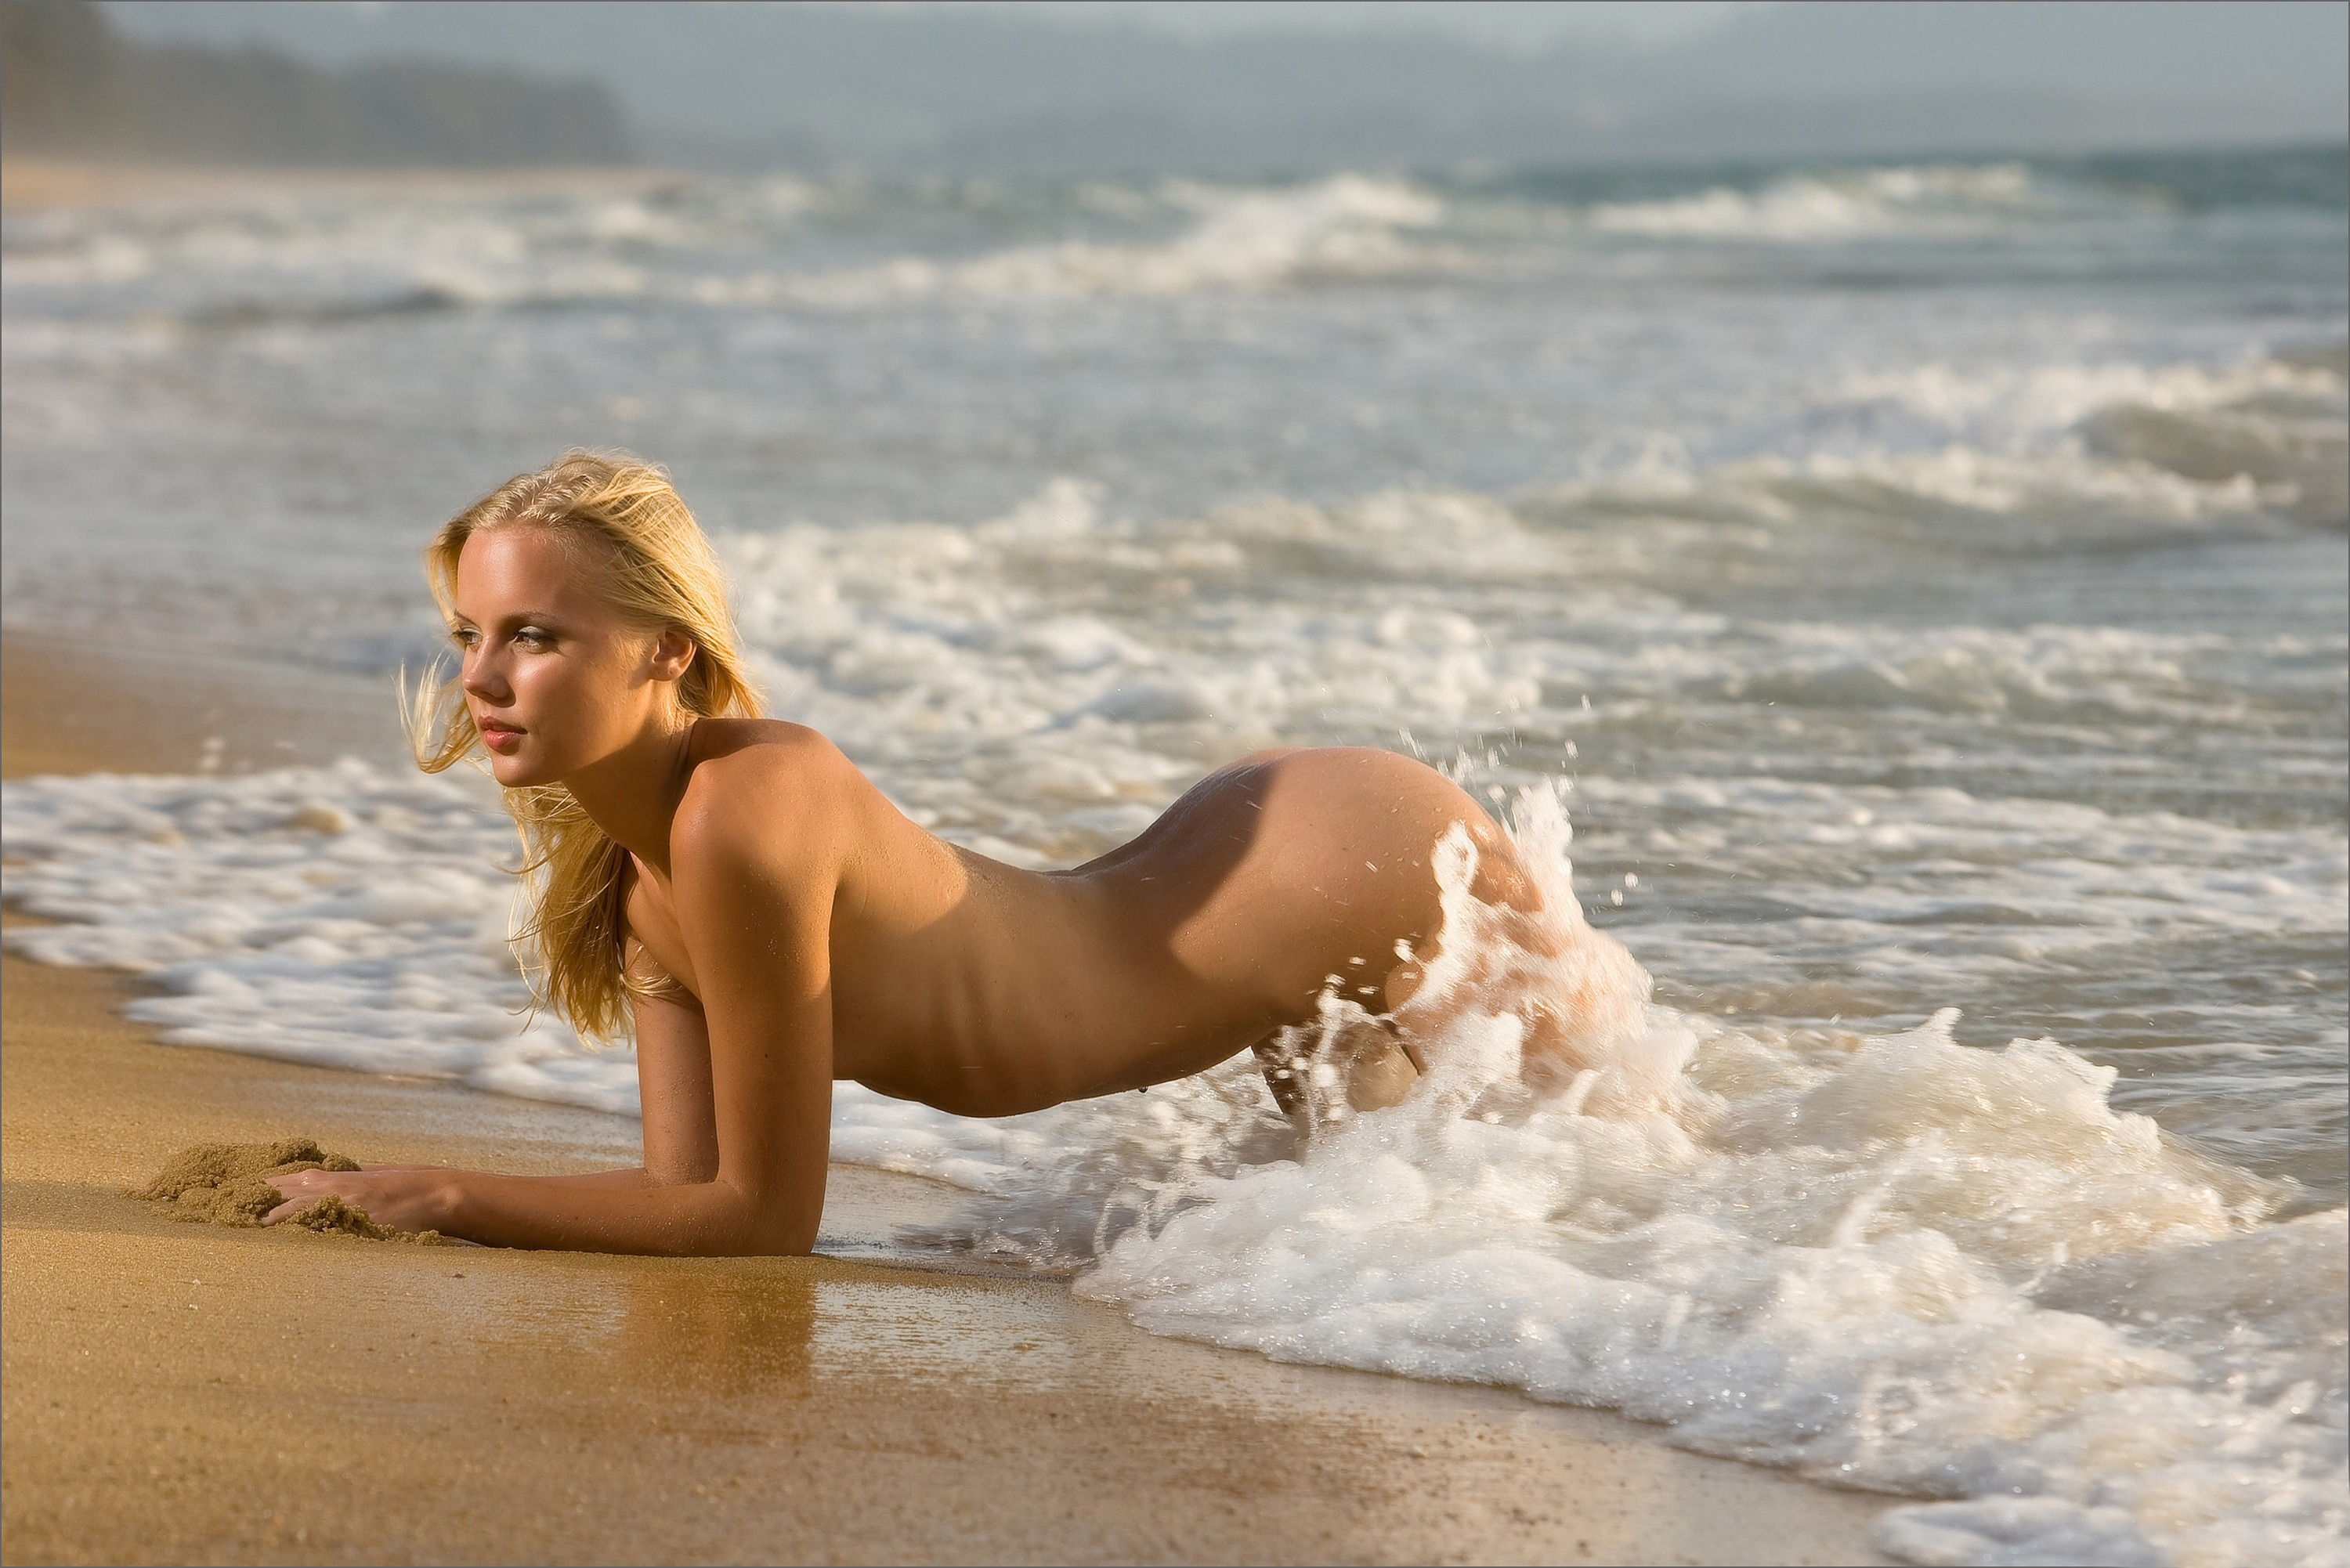 Naked sylvie of the sea, pictures and videos of hot naked girls